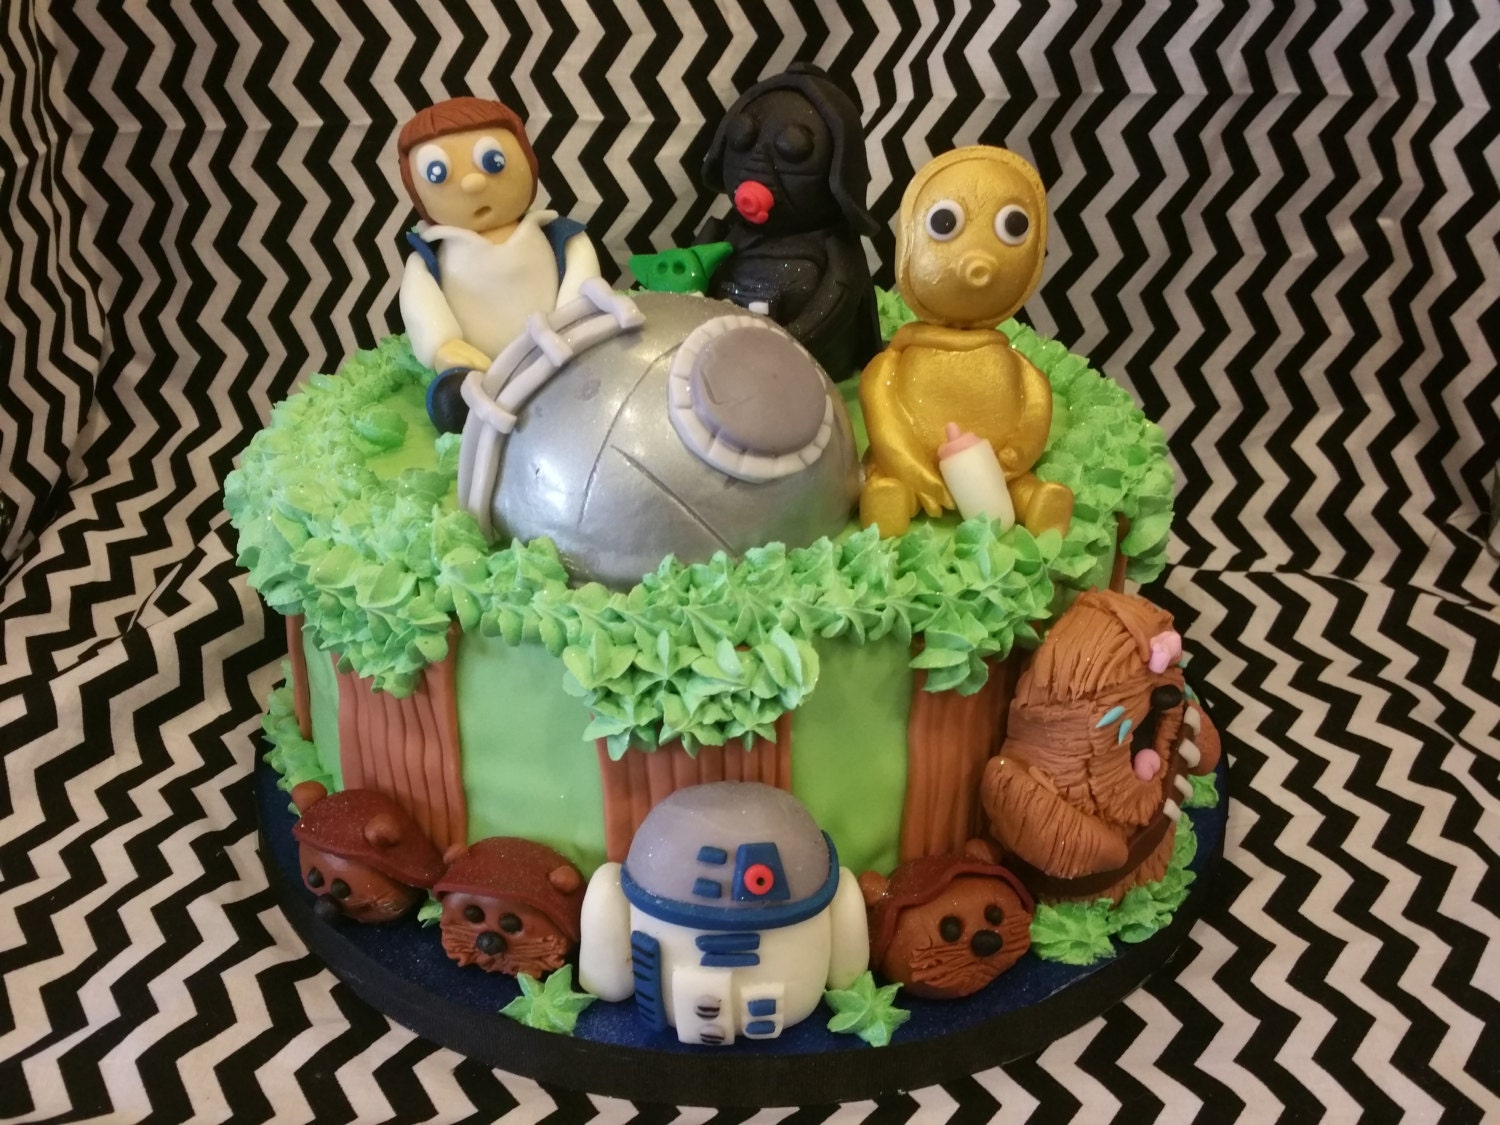 star wars baby shower fondant cake toppers by toppersbychelsi